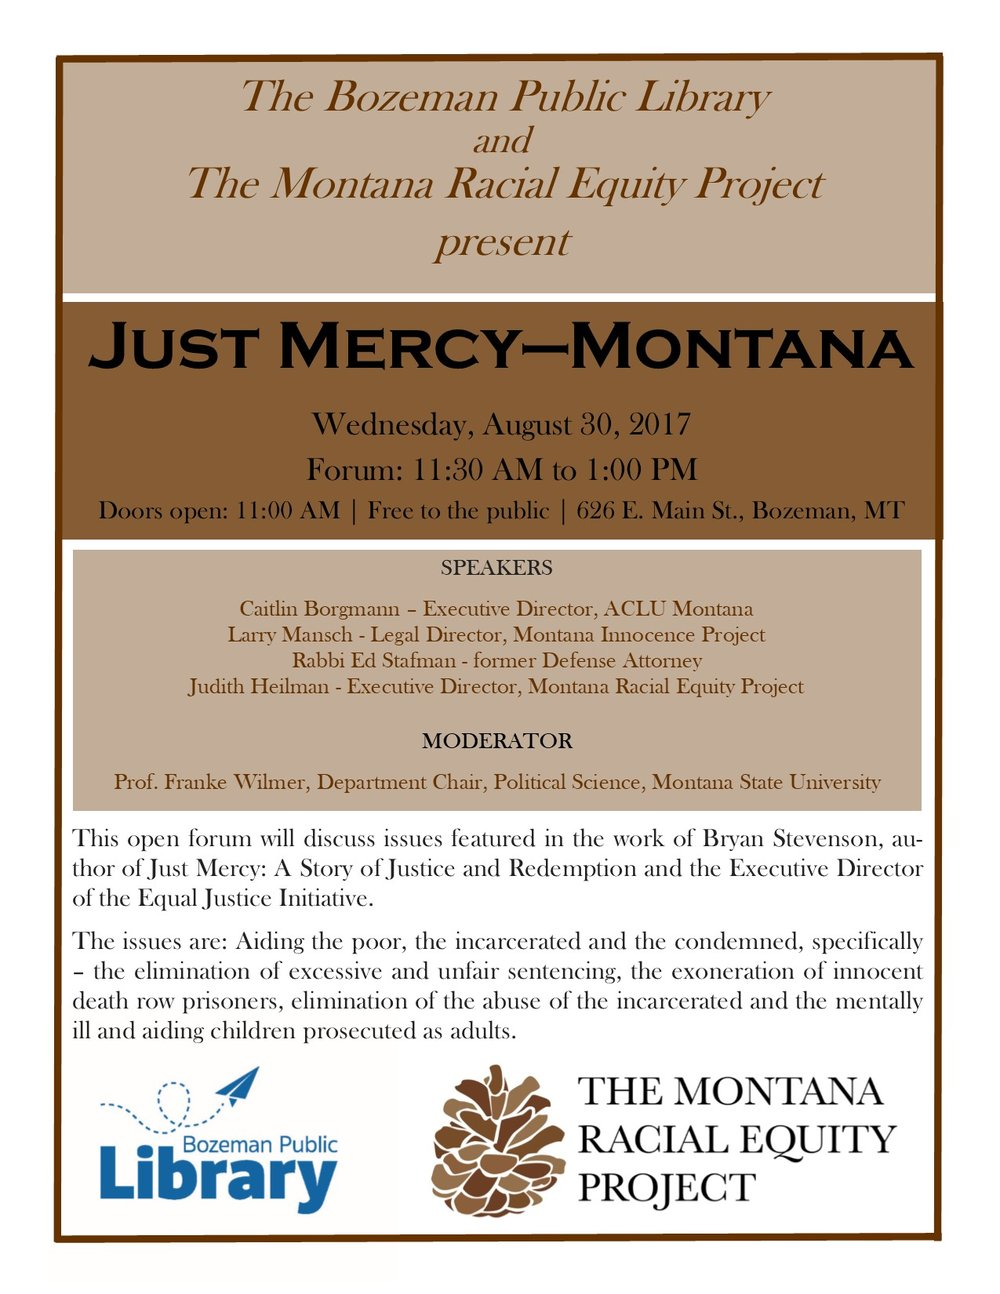 17.08.30 Just Mercy-Montana flyer, FINAL.jpg